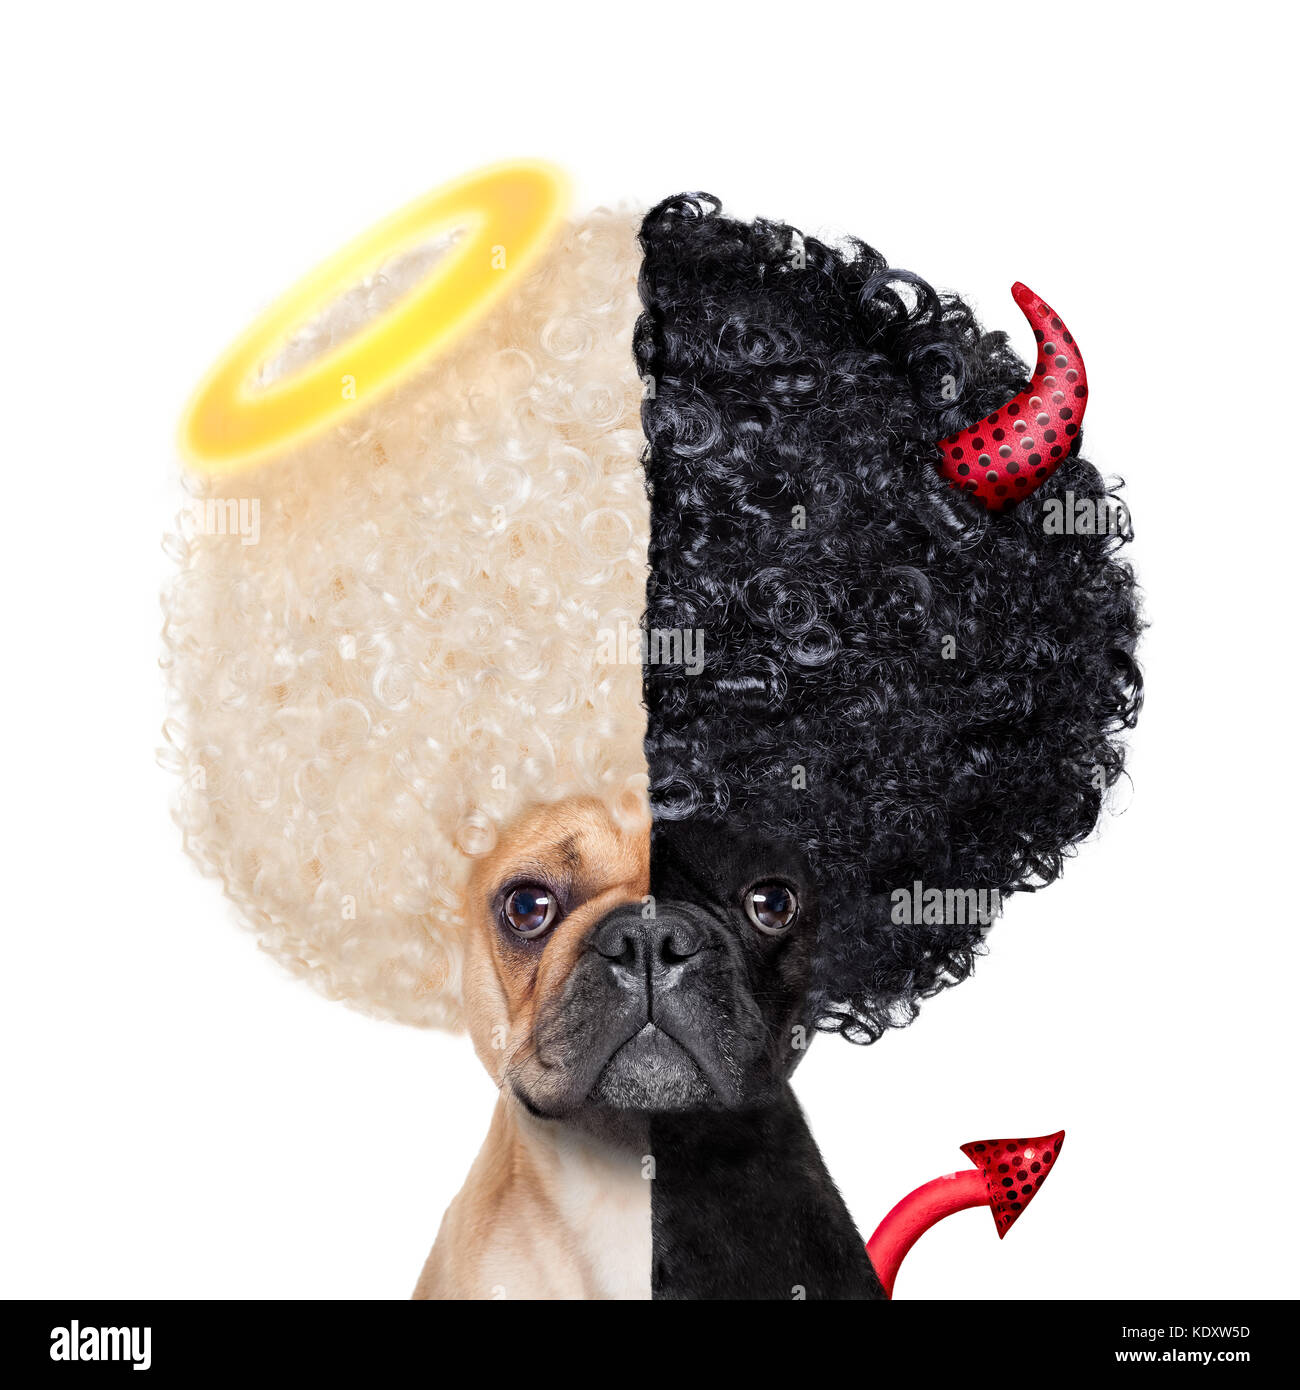 Devil and Angel fawn french bulldog dogs half face black and white ,deciding between right and wrong , good or bad, - Stock Image